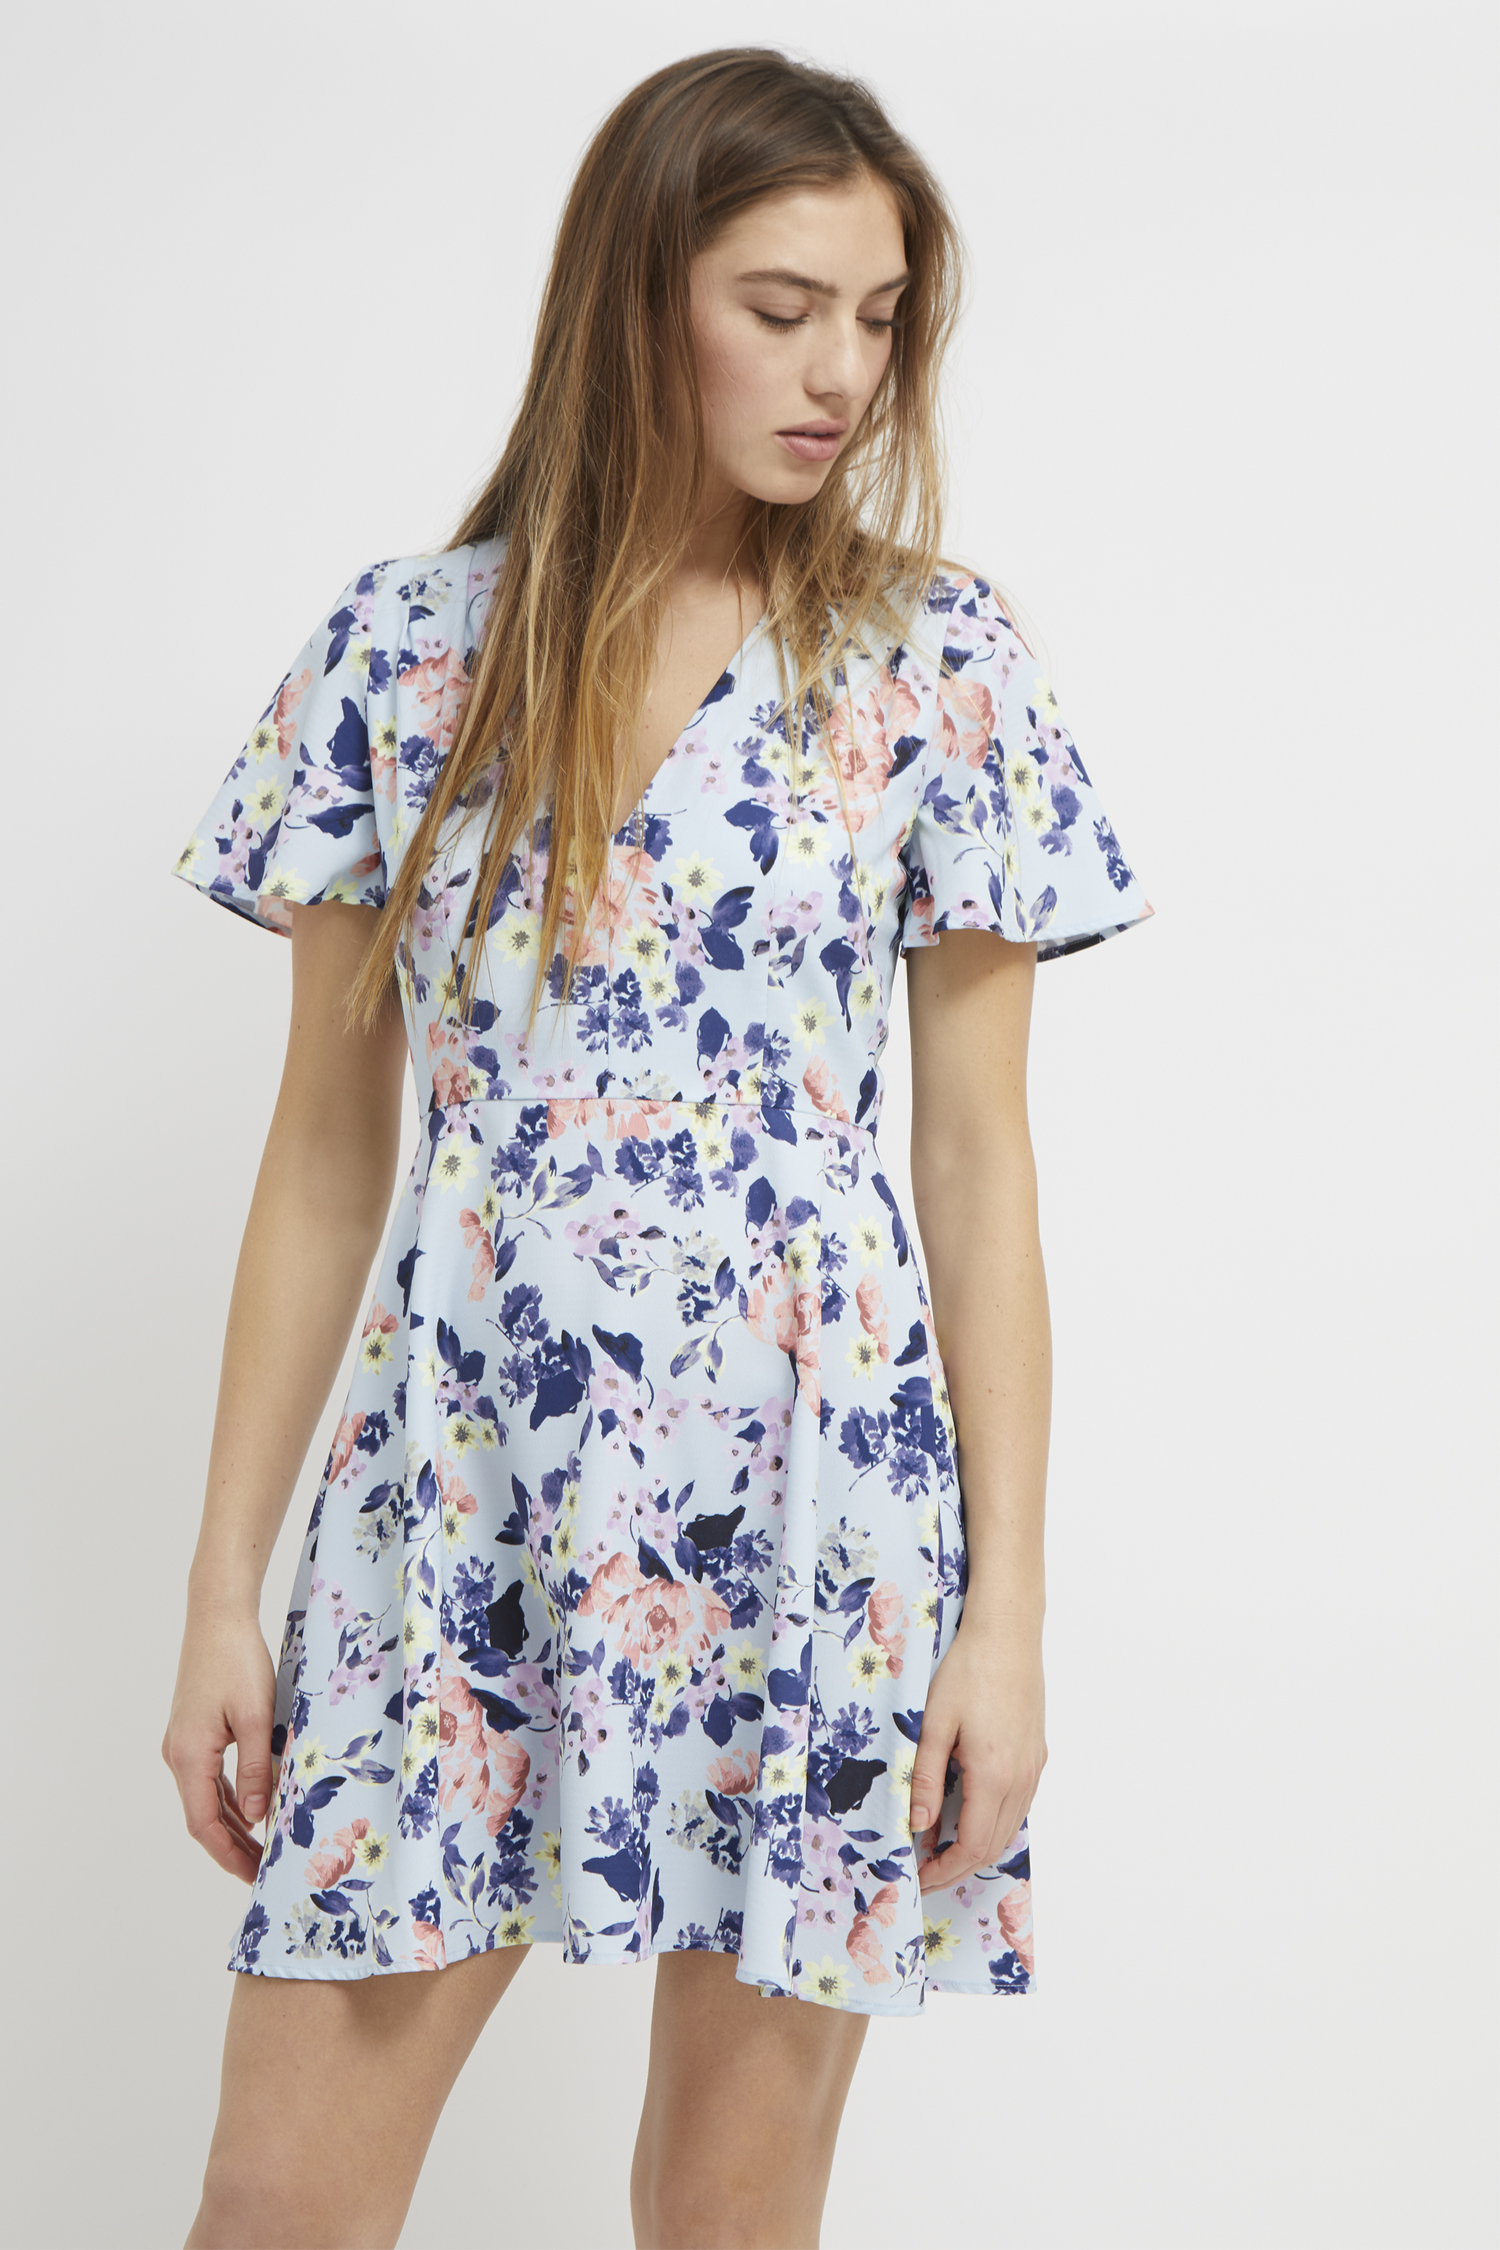 French Online Online Online French Connection DressesWomen's Online DressesWomen's DressesWomen's French DressesWomen's Connection Connection b7yf6g